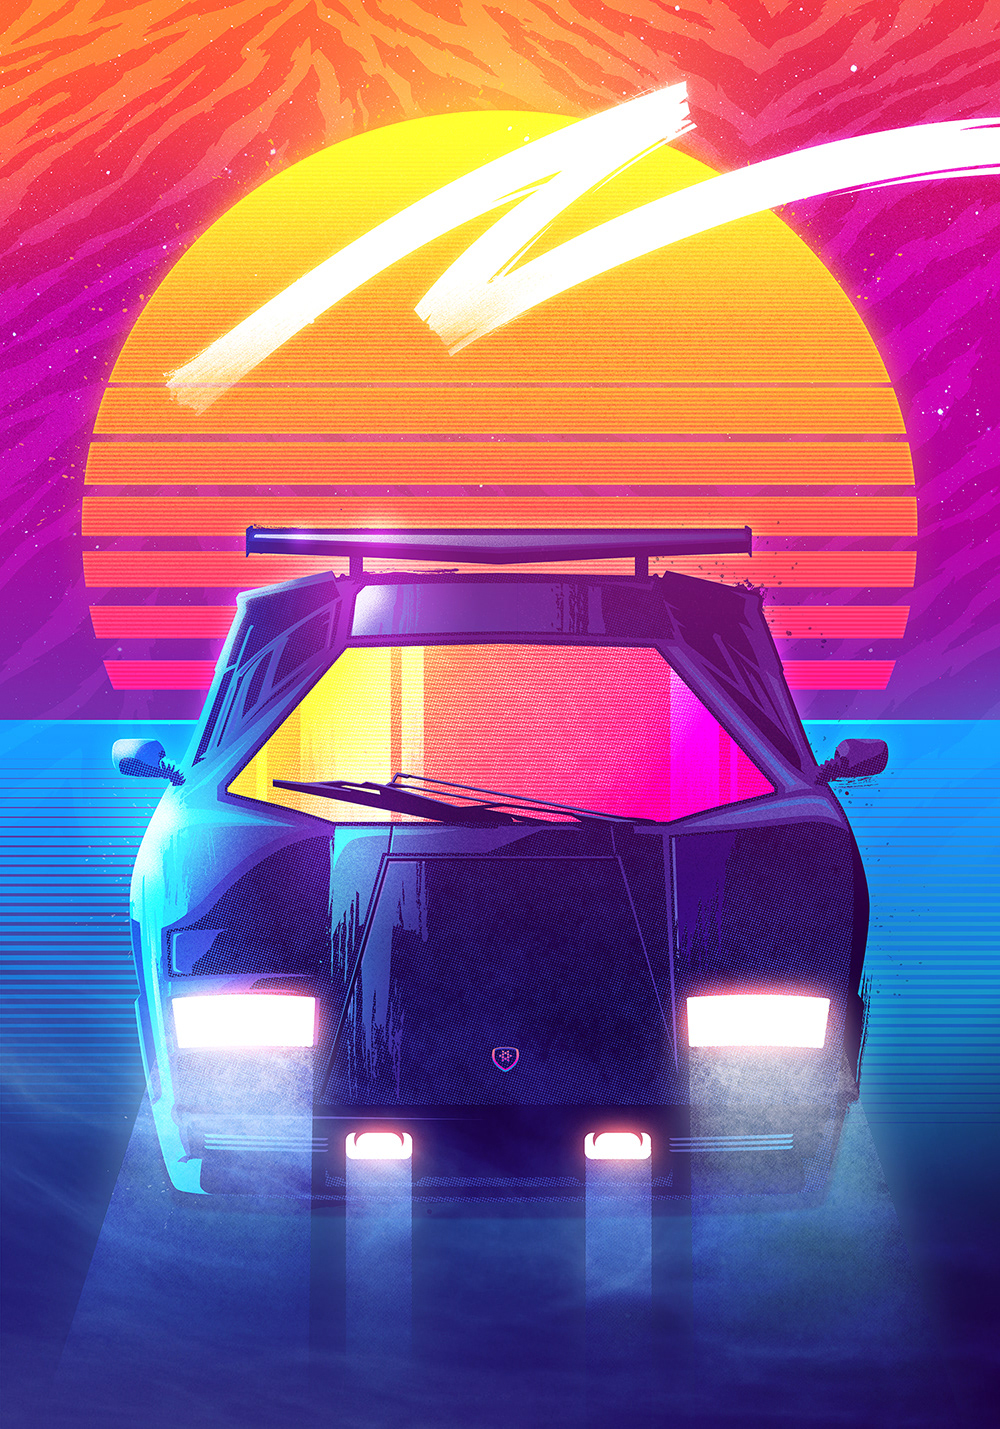 Hotline Miami Iphone Wallpaper Countach By Signalnoise Outrun